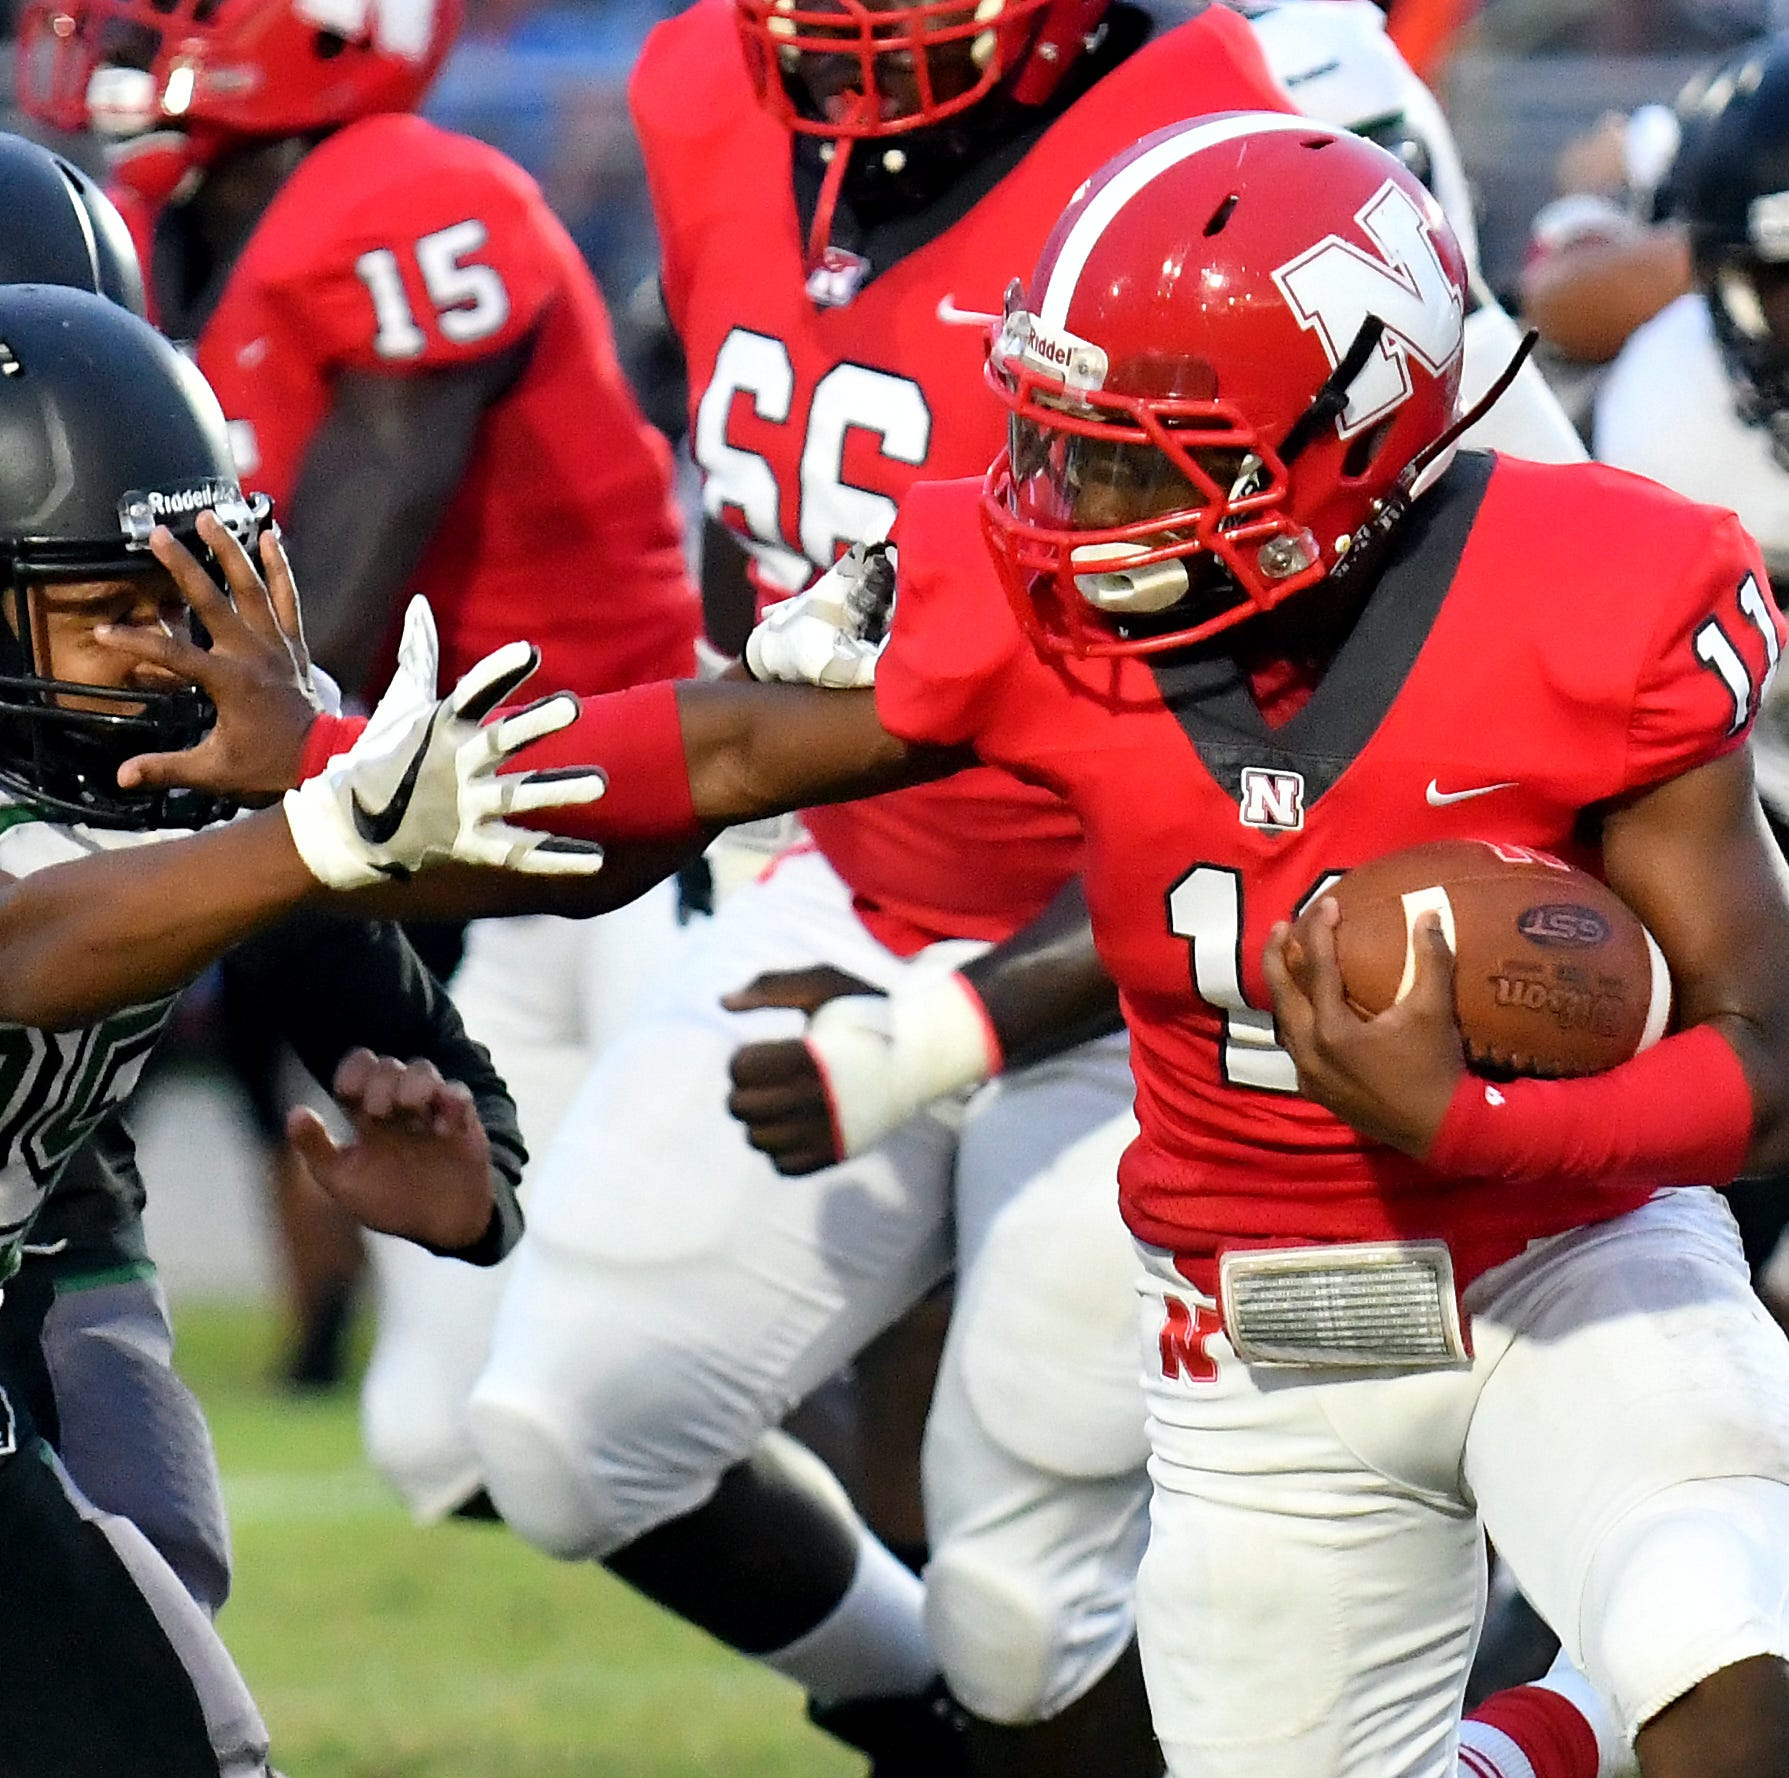 Good genes: Football success runs in family for pint-sized Red Knights powerhouse Shomari Mason